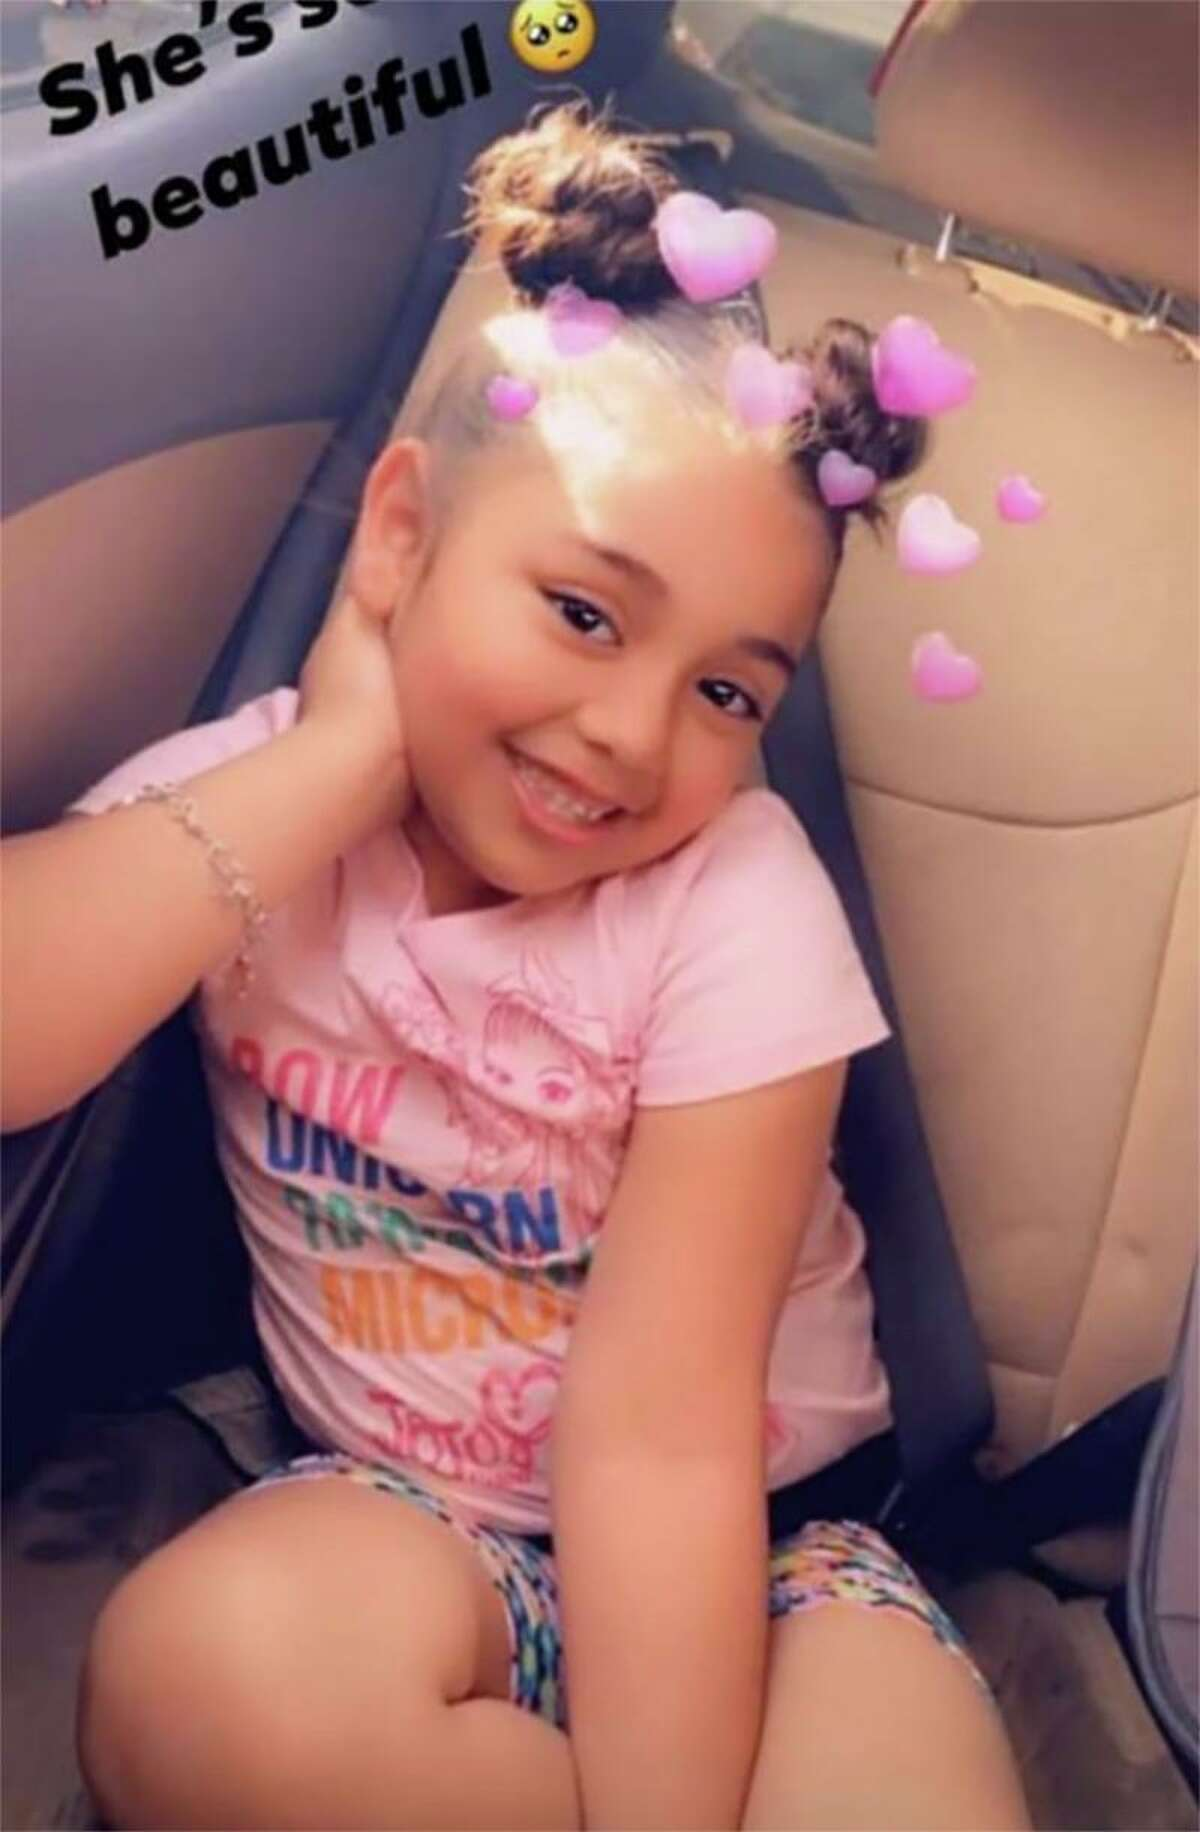 Saryah Perez, 6, was killed in a shooting Sunday, another victim in the gun violence epidemic.